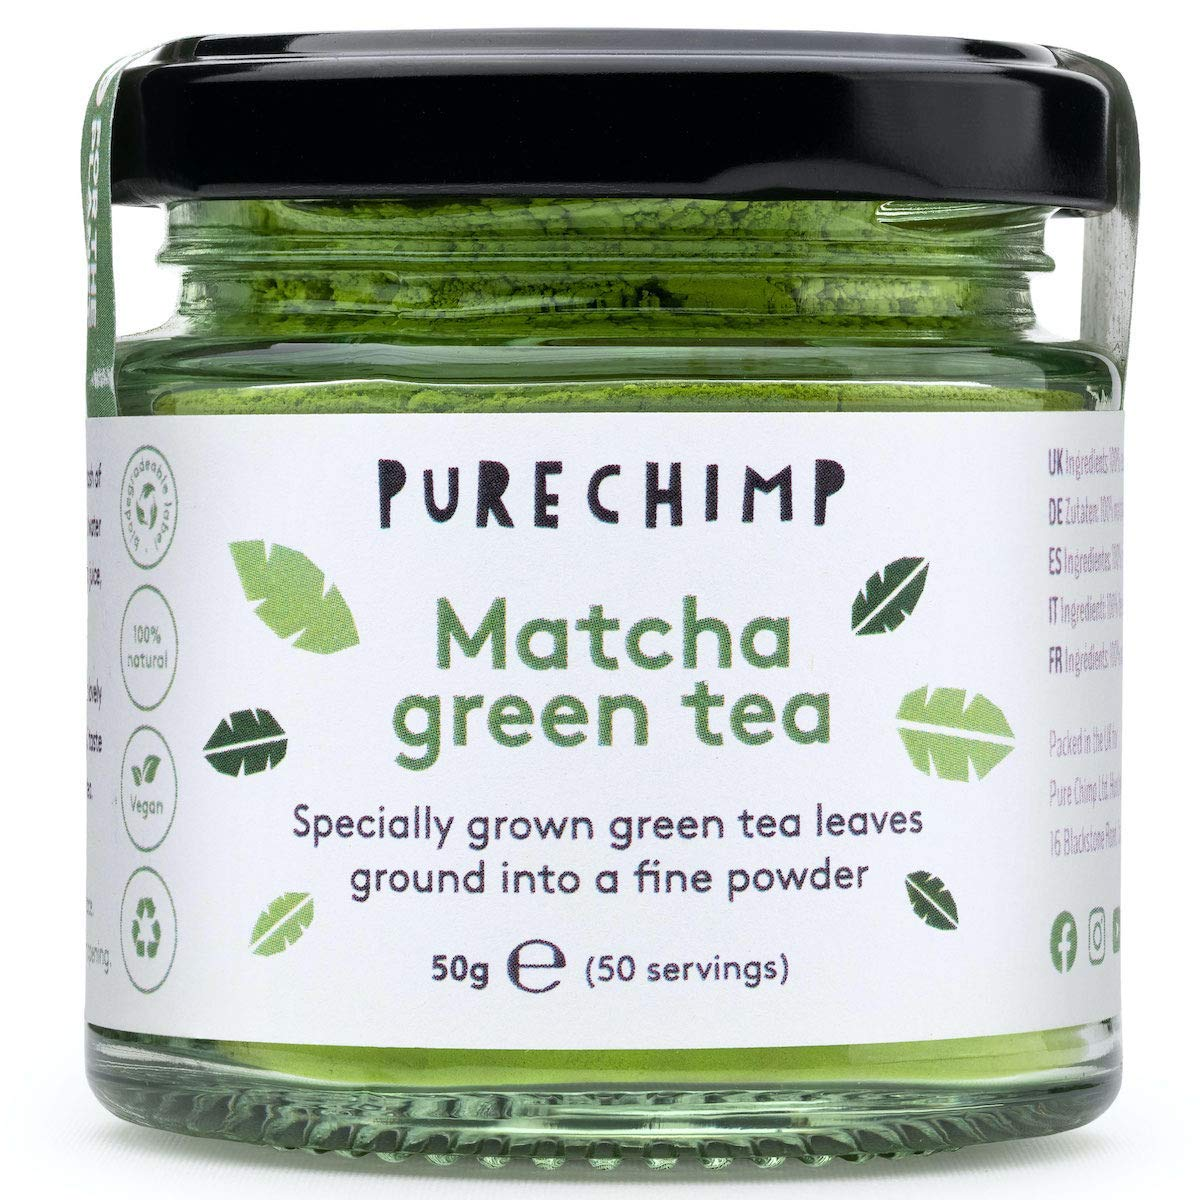 Matcha Green Tea Powder 50g (1.75oz) by PureChimp - Ceremonial Grade Matcha Green Tea Powder From Japan - Pesticide-Free - Recyclable Glass + Aluminium Lid (Regular)